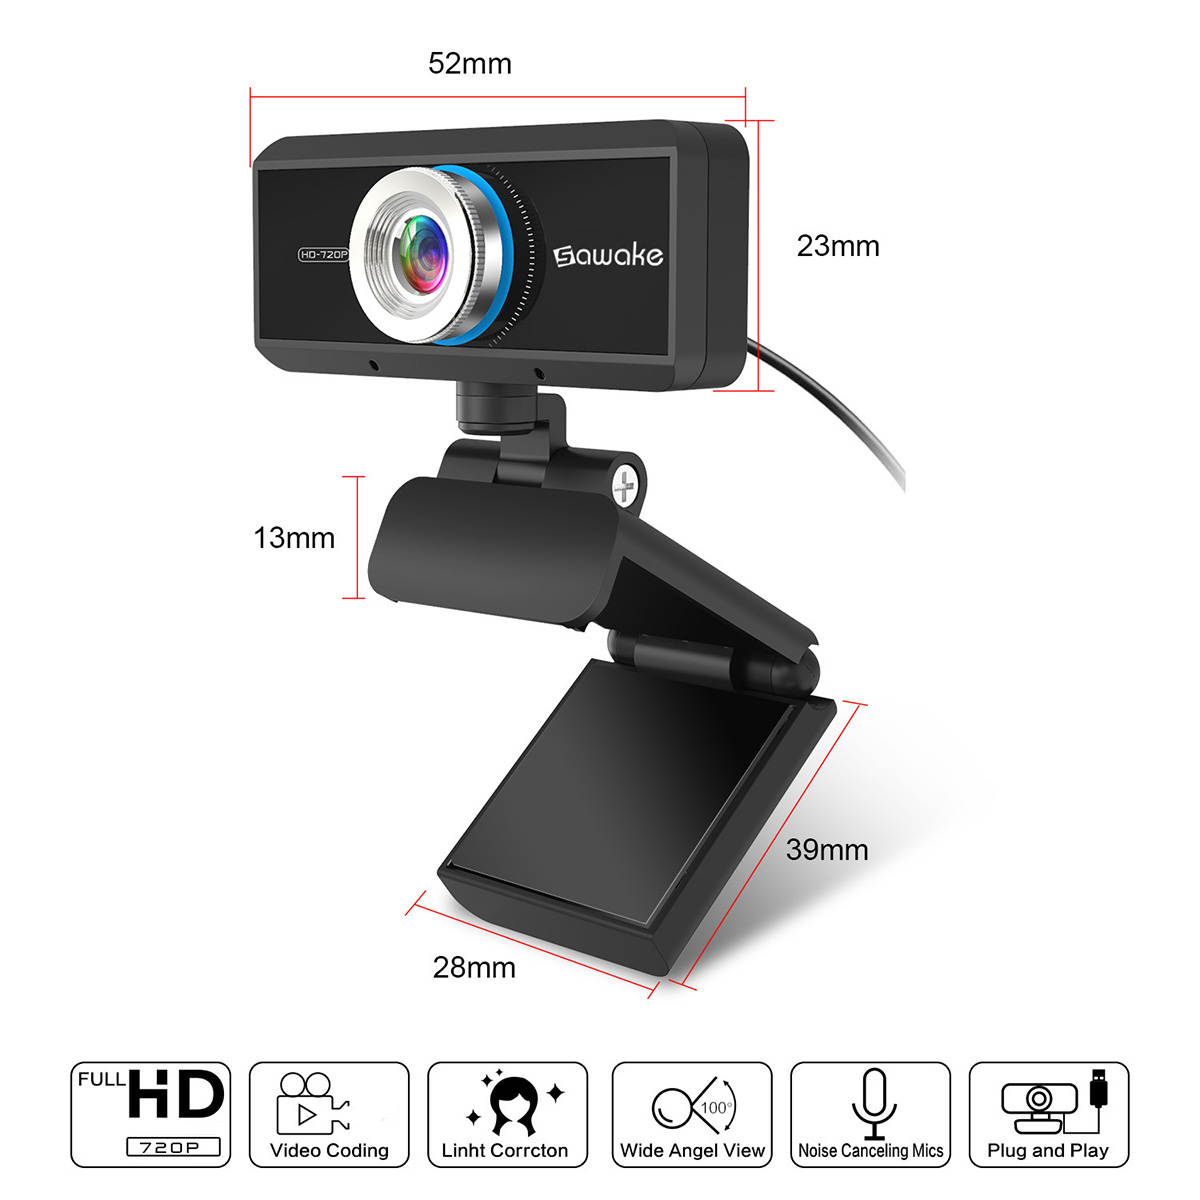 Sawake 720P HD Webcam Computer Camera with Built-in Mic 13